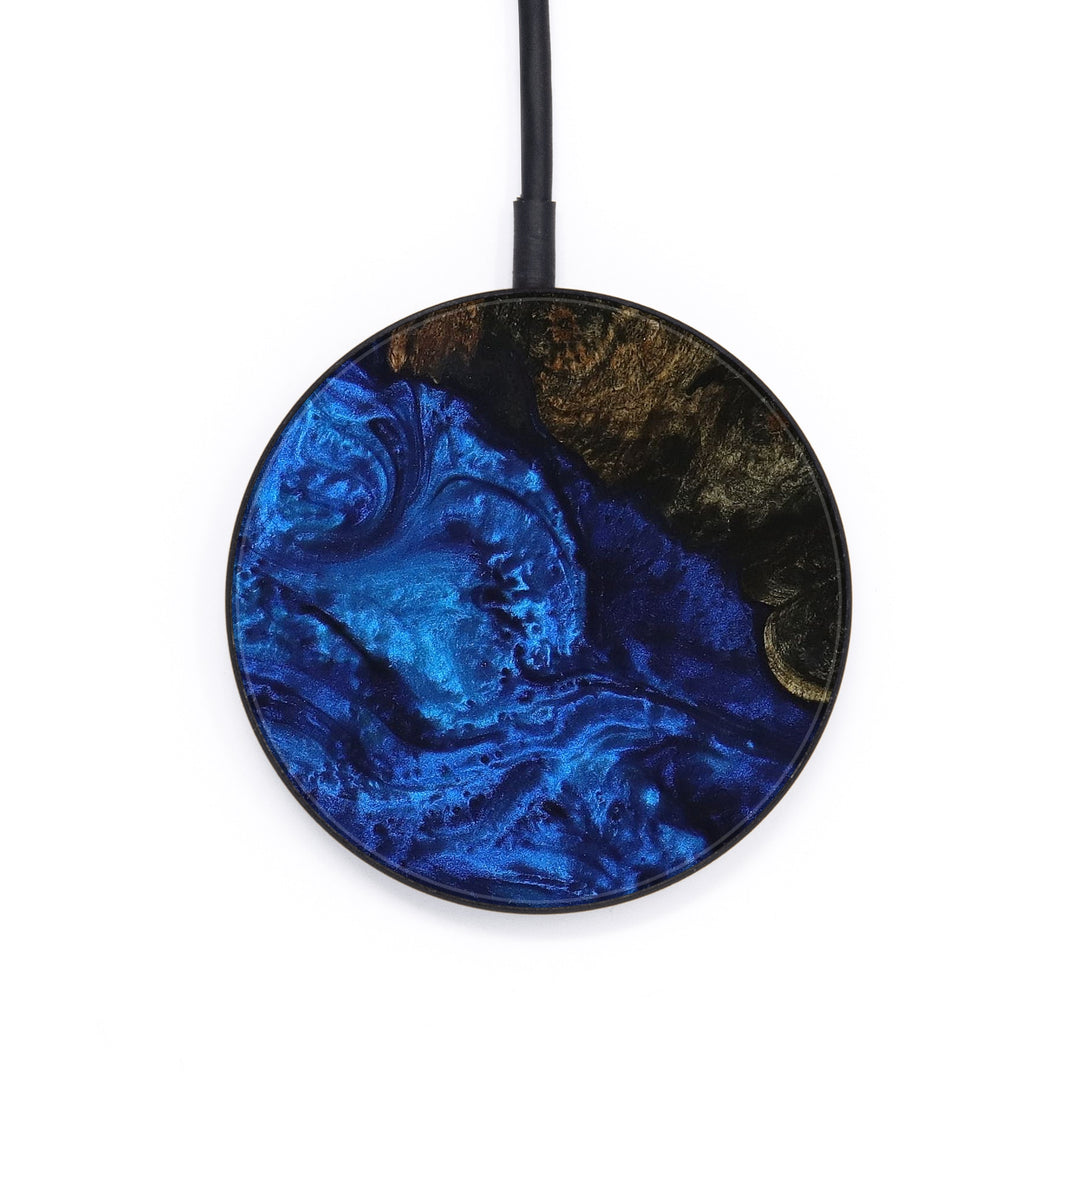 Circle Wood+Resin Wireless Charger - Mayeul (Dark Blue, 393393)